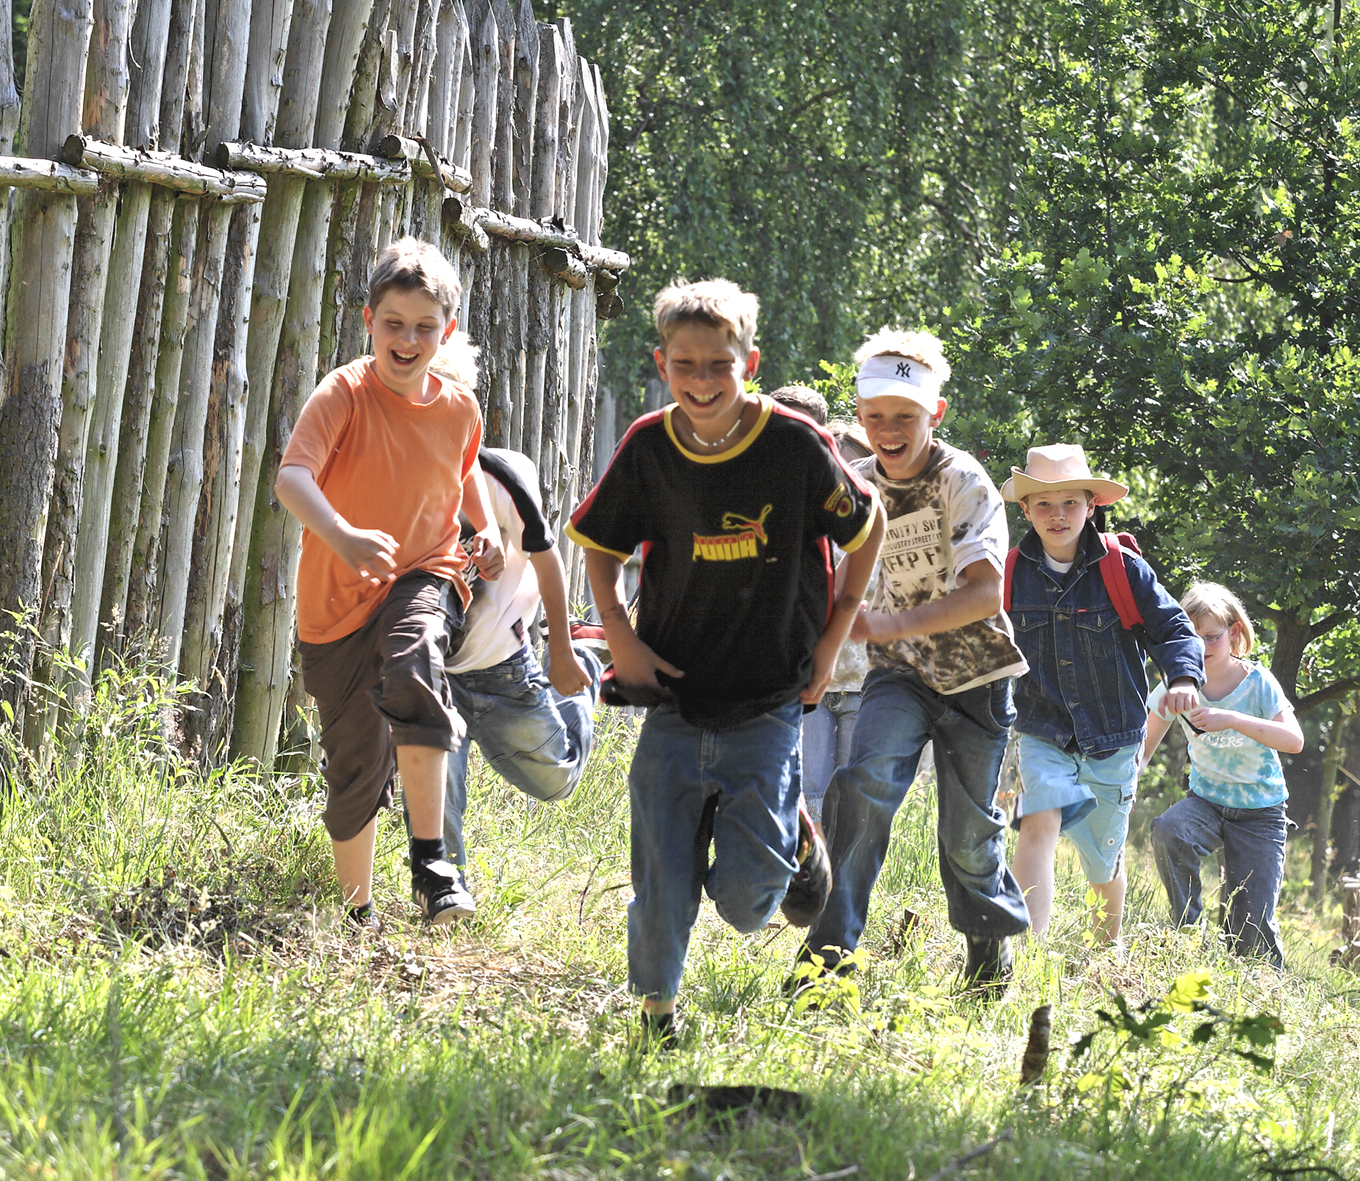 RUF Jugendreisen: Das Ehapa Kids-Camp startet durch